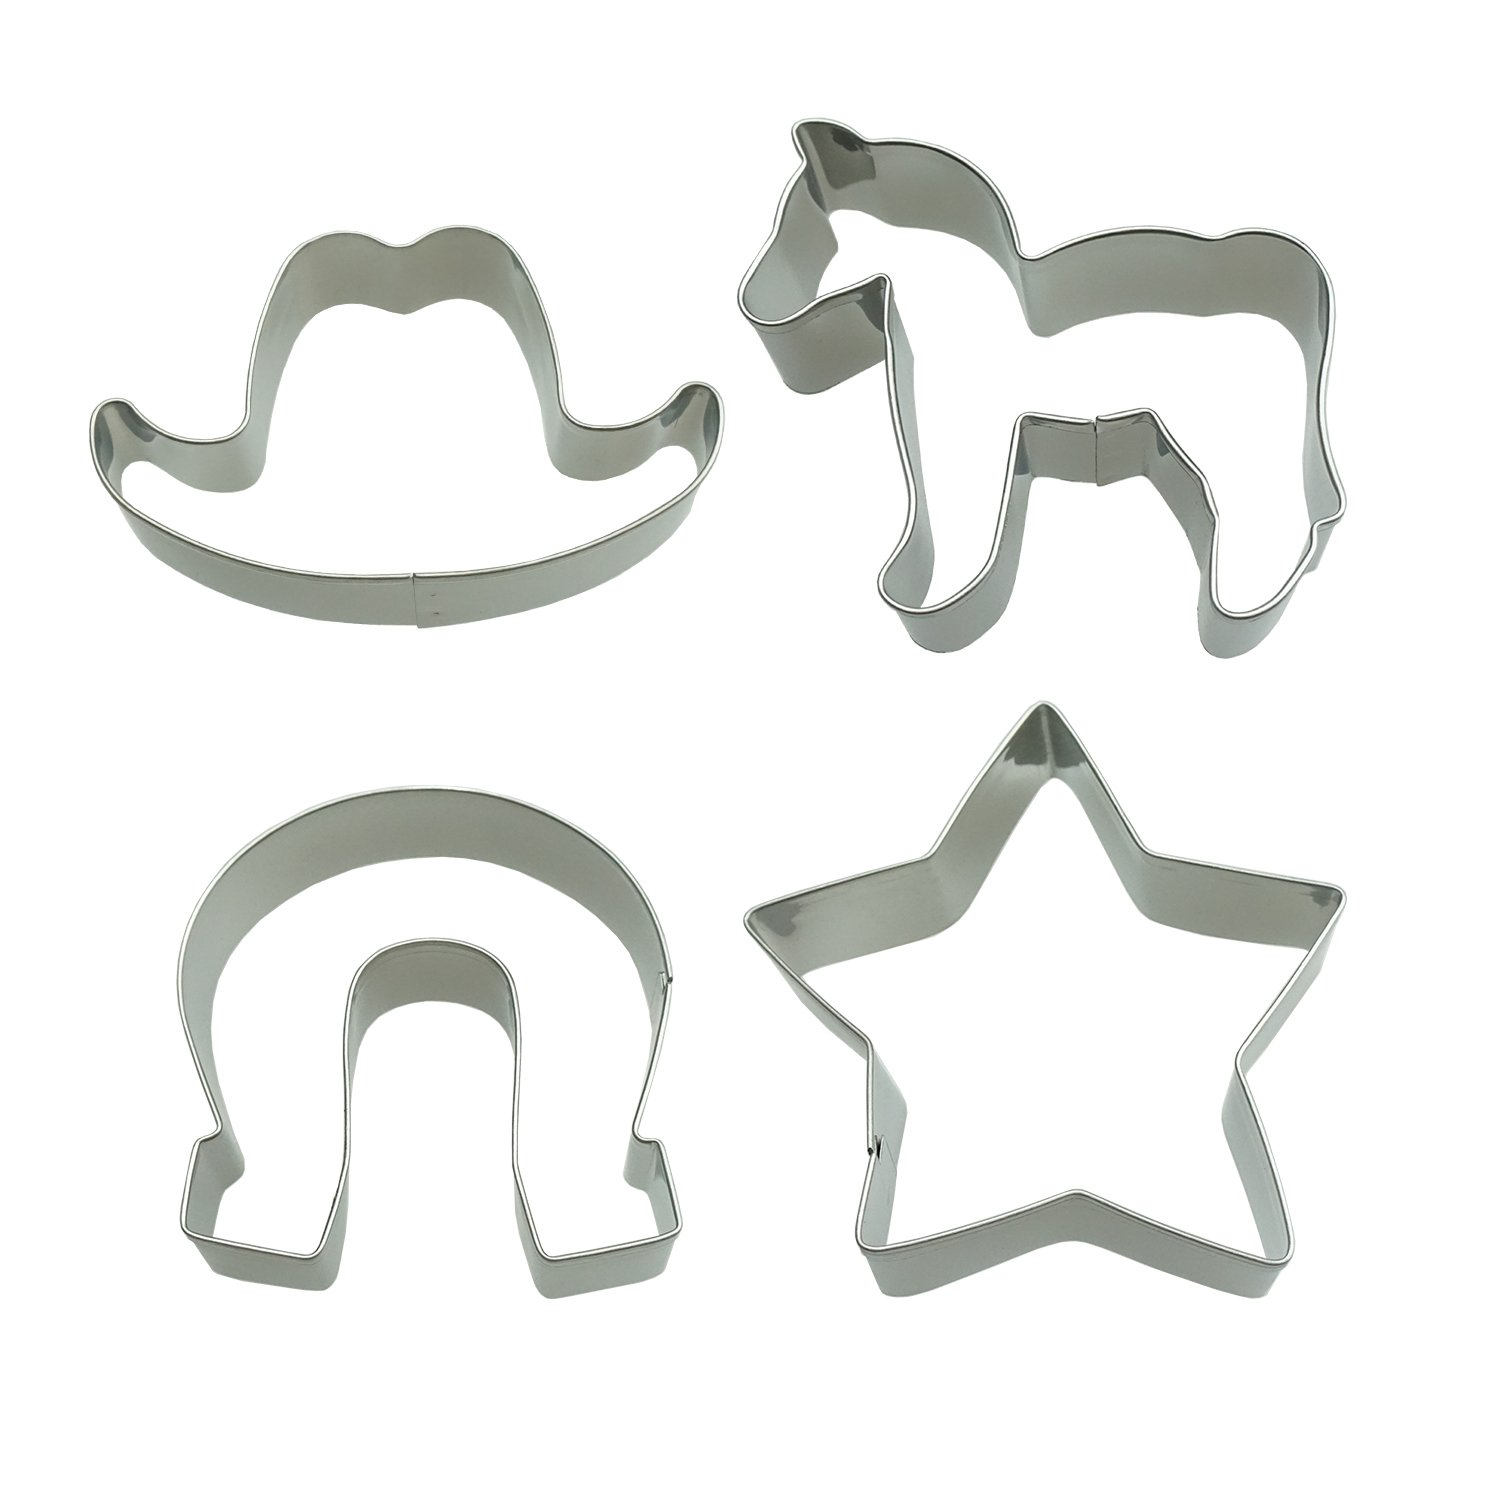 Western Cowboy Cookie Cutter Set Cowboy Hat Star Horseshoe Pony Classic Shape Fondant Pony Cakes Cutters for Kids Party Tin Plated Steel 4 Piece bySHXSTORE